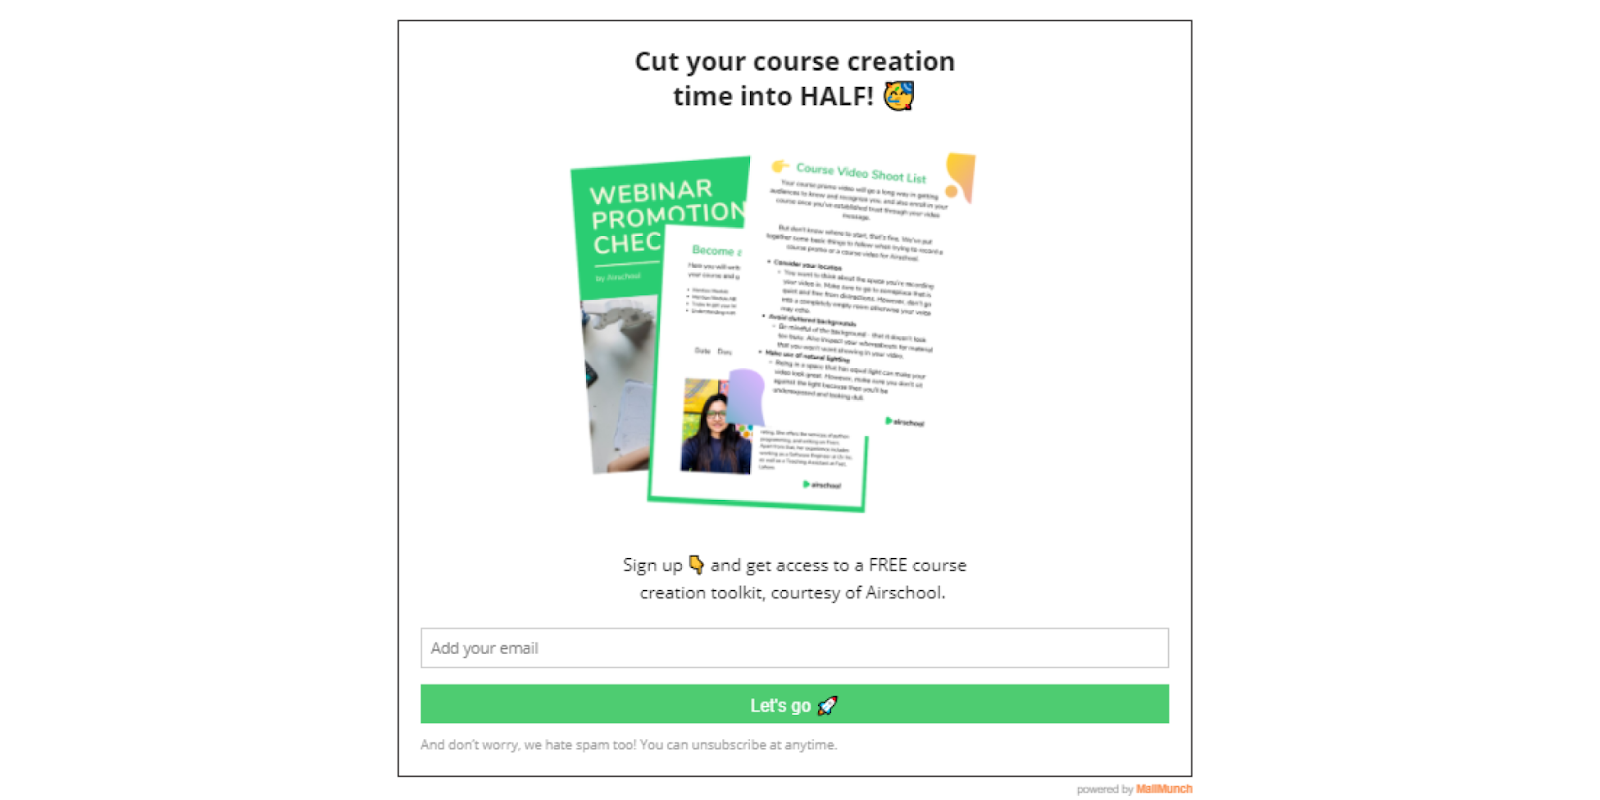 Opt-in form offering a free course creation toolkit lead magnet in return for an email address